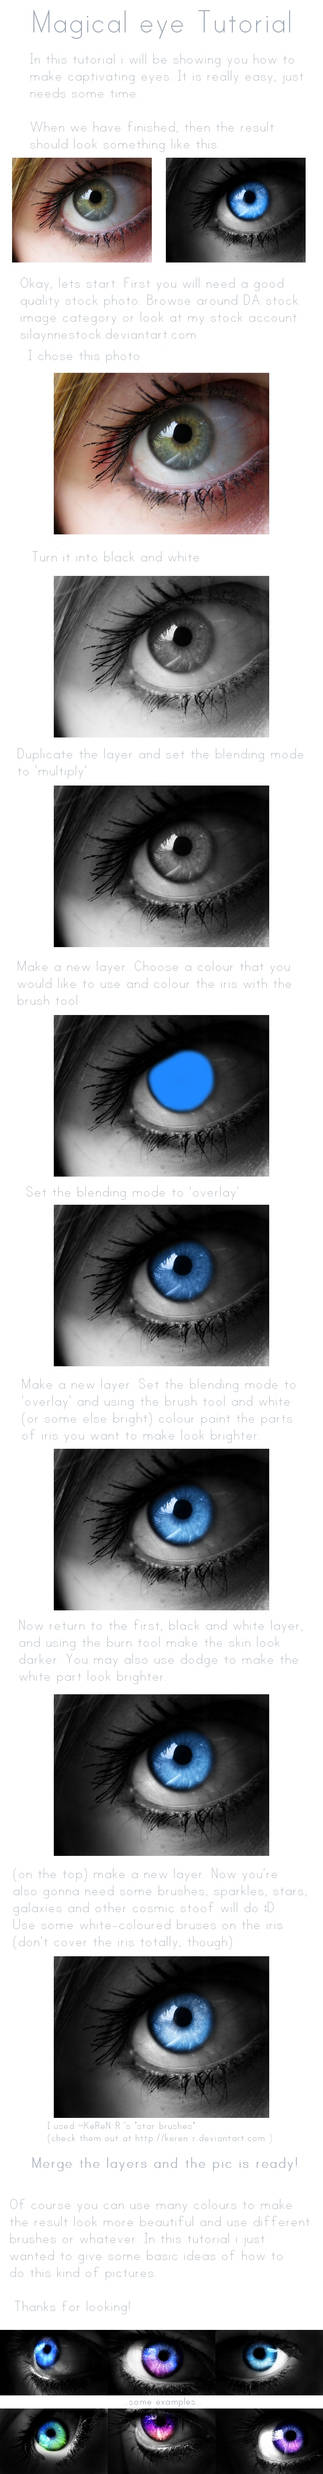 Magical eye: Tutorial